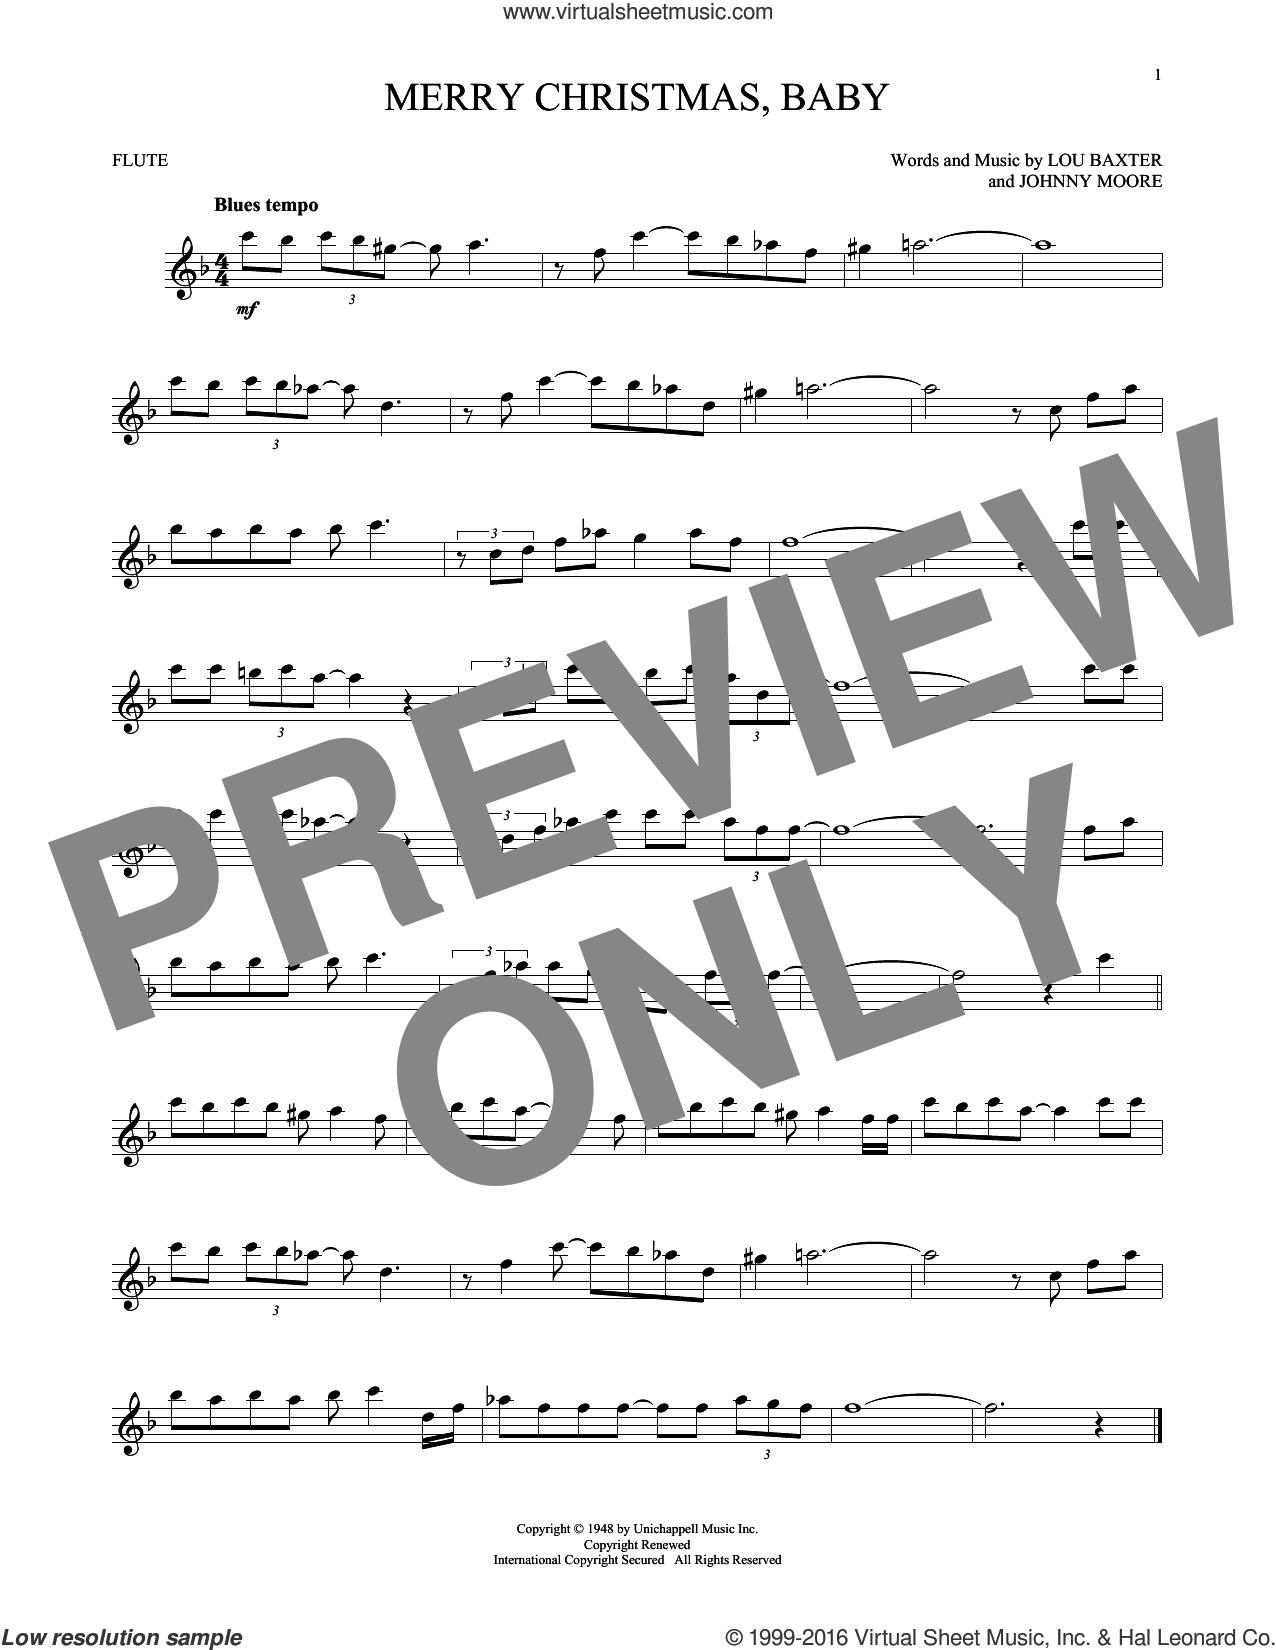 Merry Christmas, Baby sheet music for flute solo by Elvis Presley, Johnny Moore and Lou Baxter, intermediate skill level